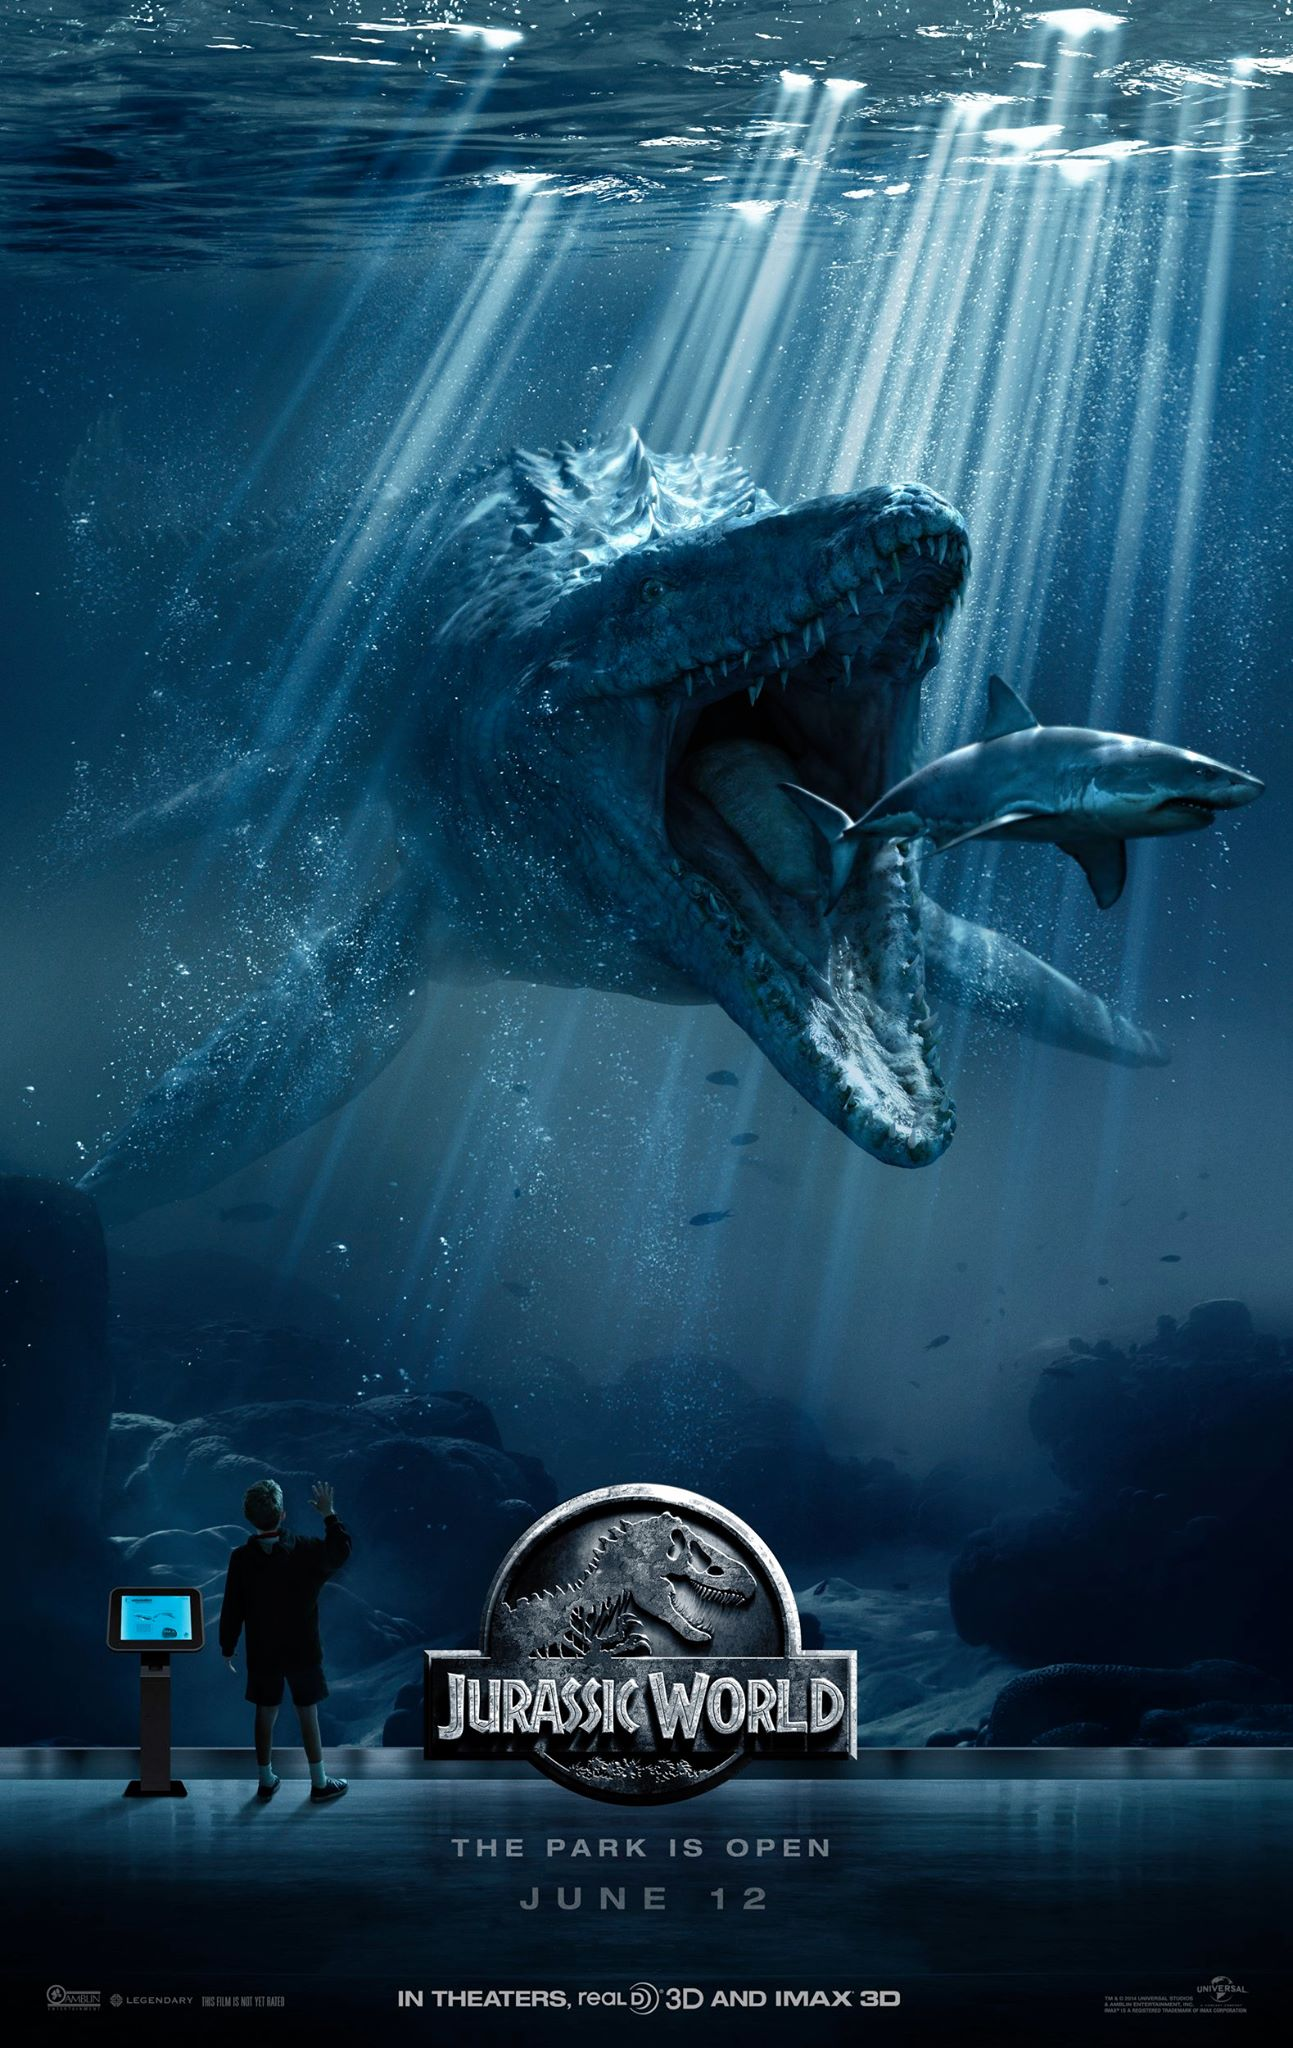 10623357_908272402550977_6384474390653526950_o Second Jurassic World Poster Features Mosasaurus